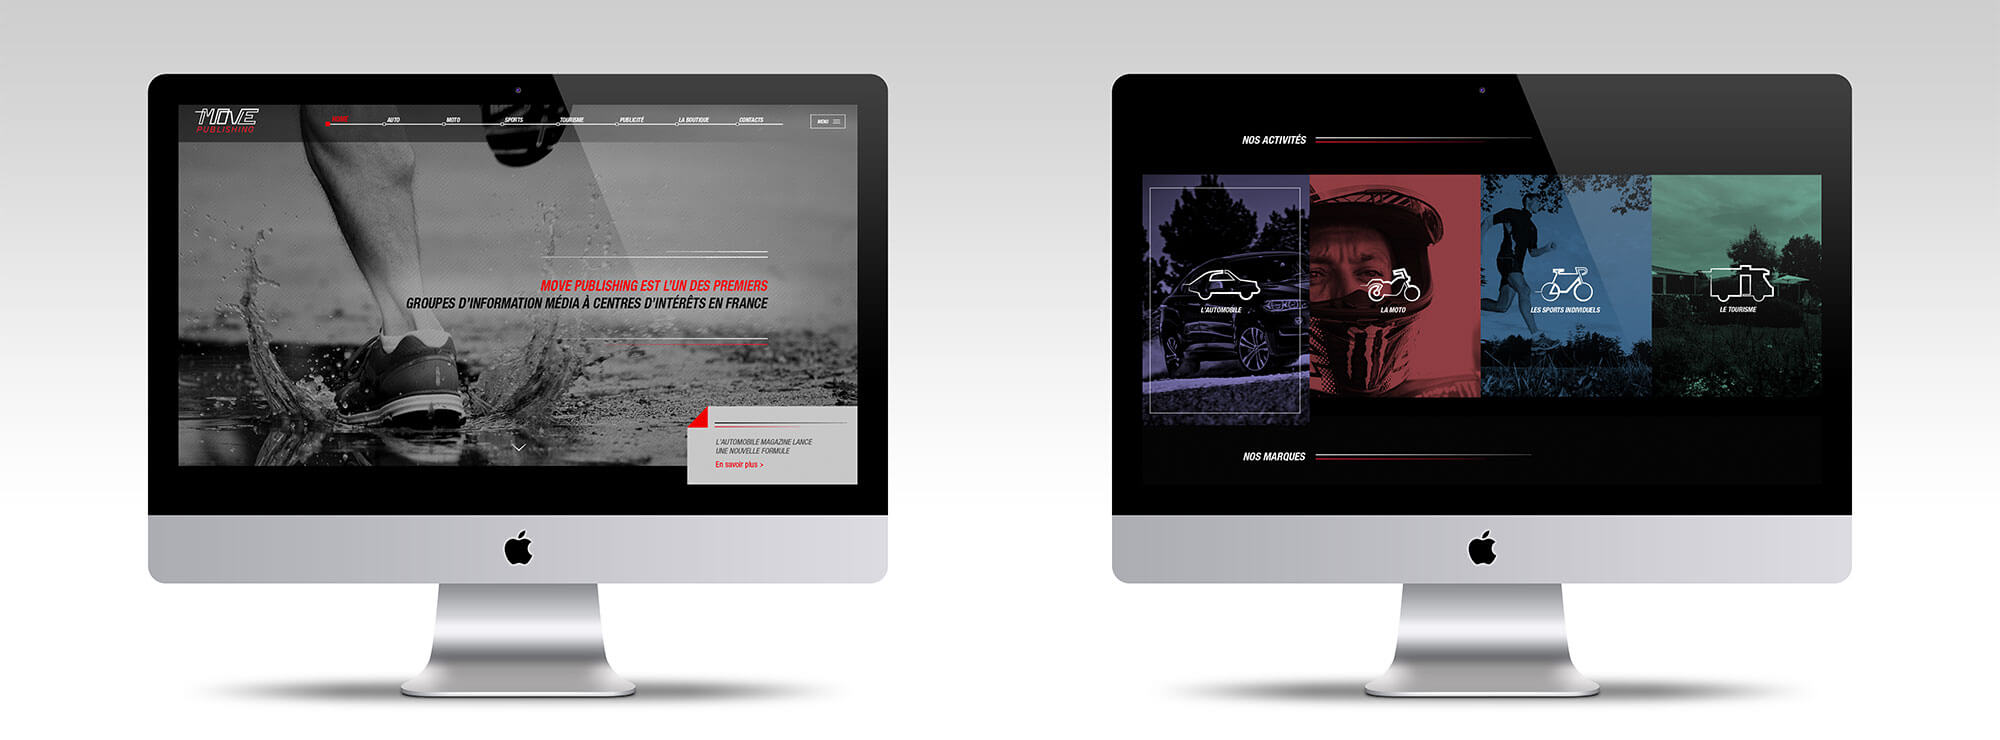 04 motor presse move publishing home site.jpg